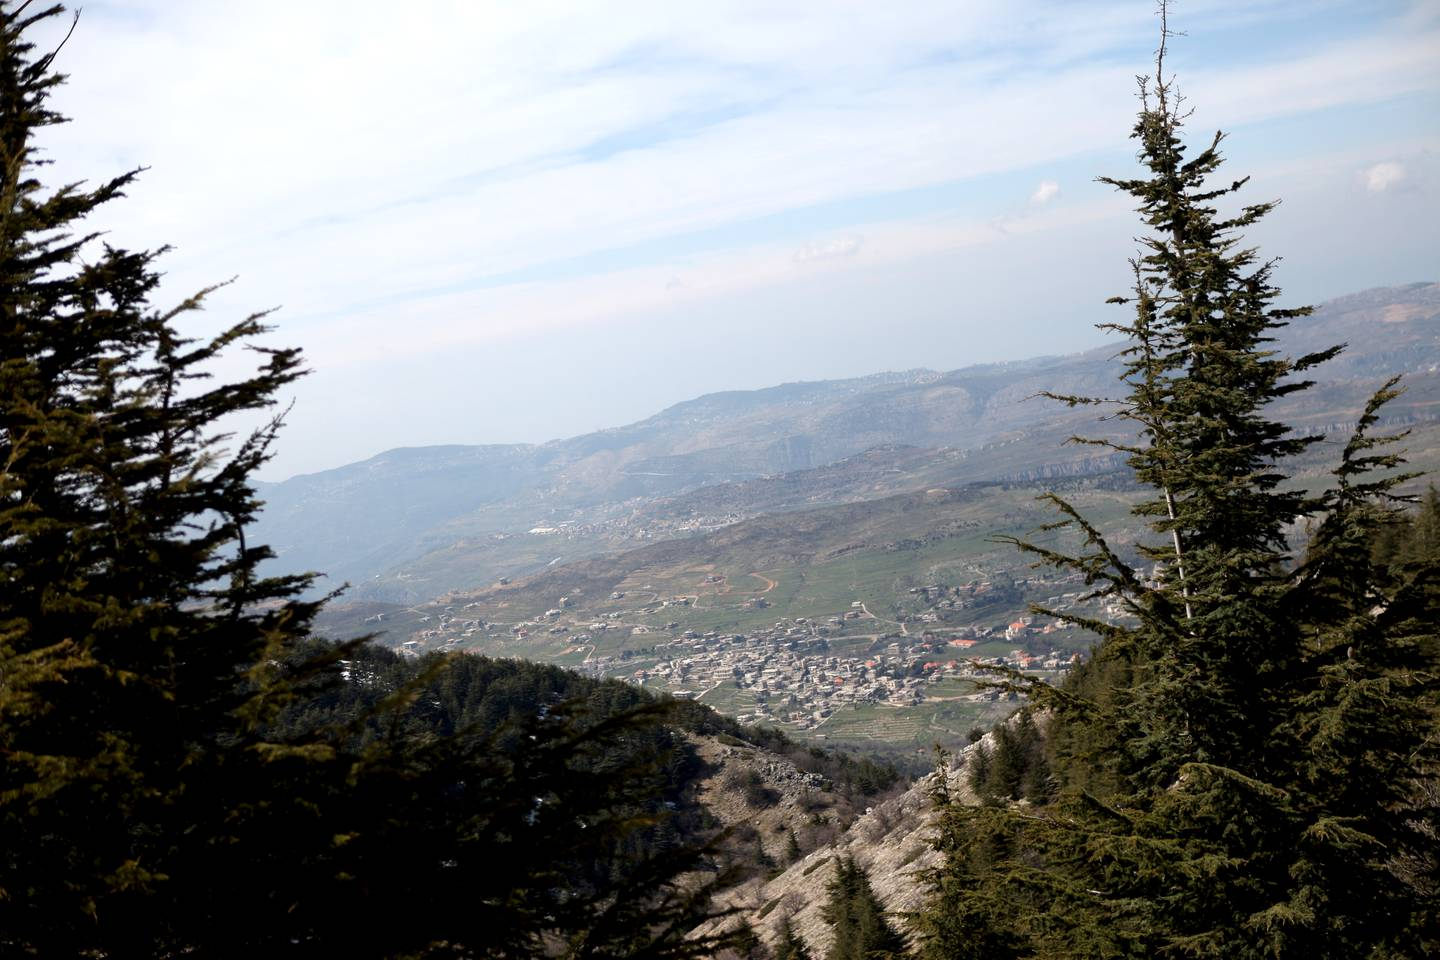 3/19/2009 Barouk, LebanonThe village of Barouk sits below the Cedar Reserve. Human encroachment and logging over the past 1000 years has played a large part in the shrinking Cedar population in Lebanon, with many trees being cut down by colonial forces to aide in the building of railroad lines in the region.